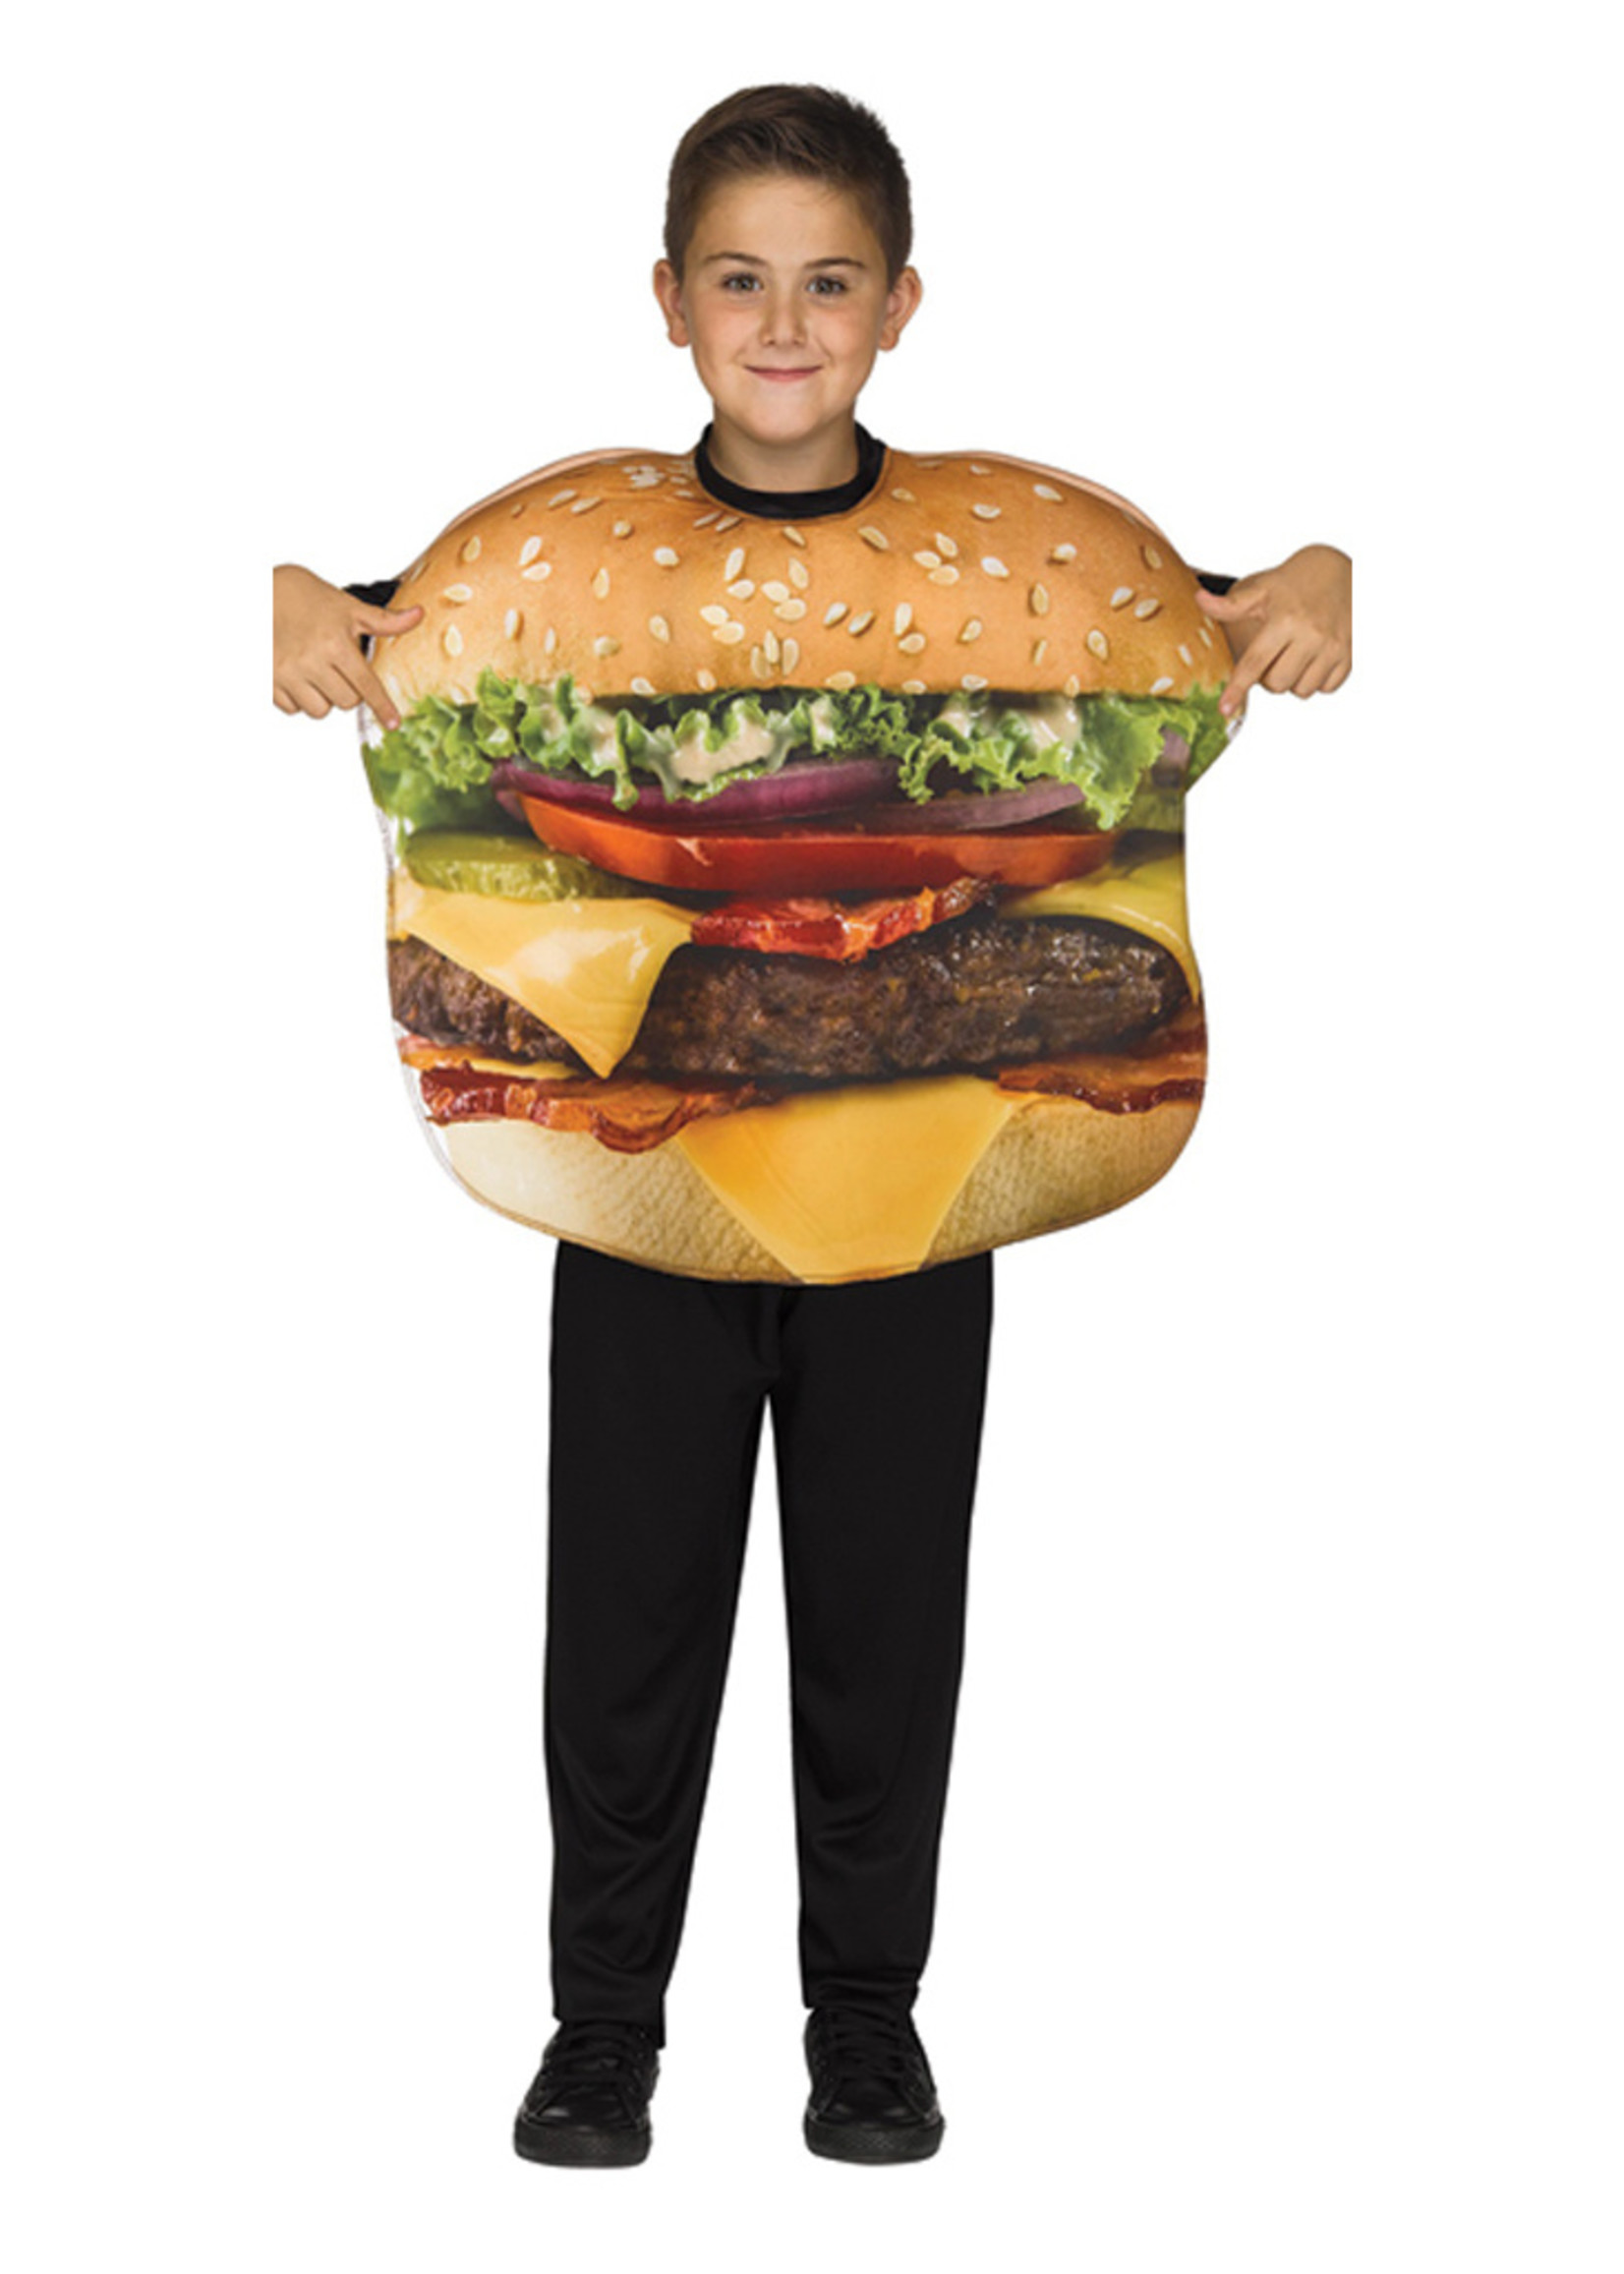 Cheeseburger Costume - Boys